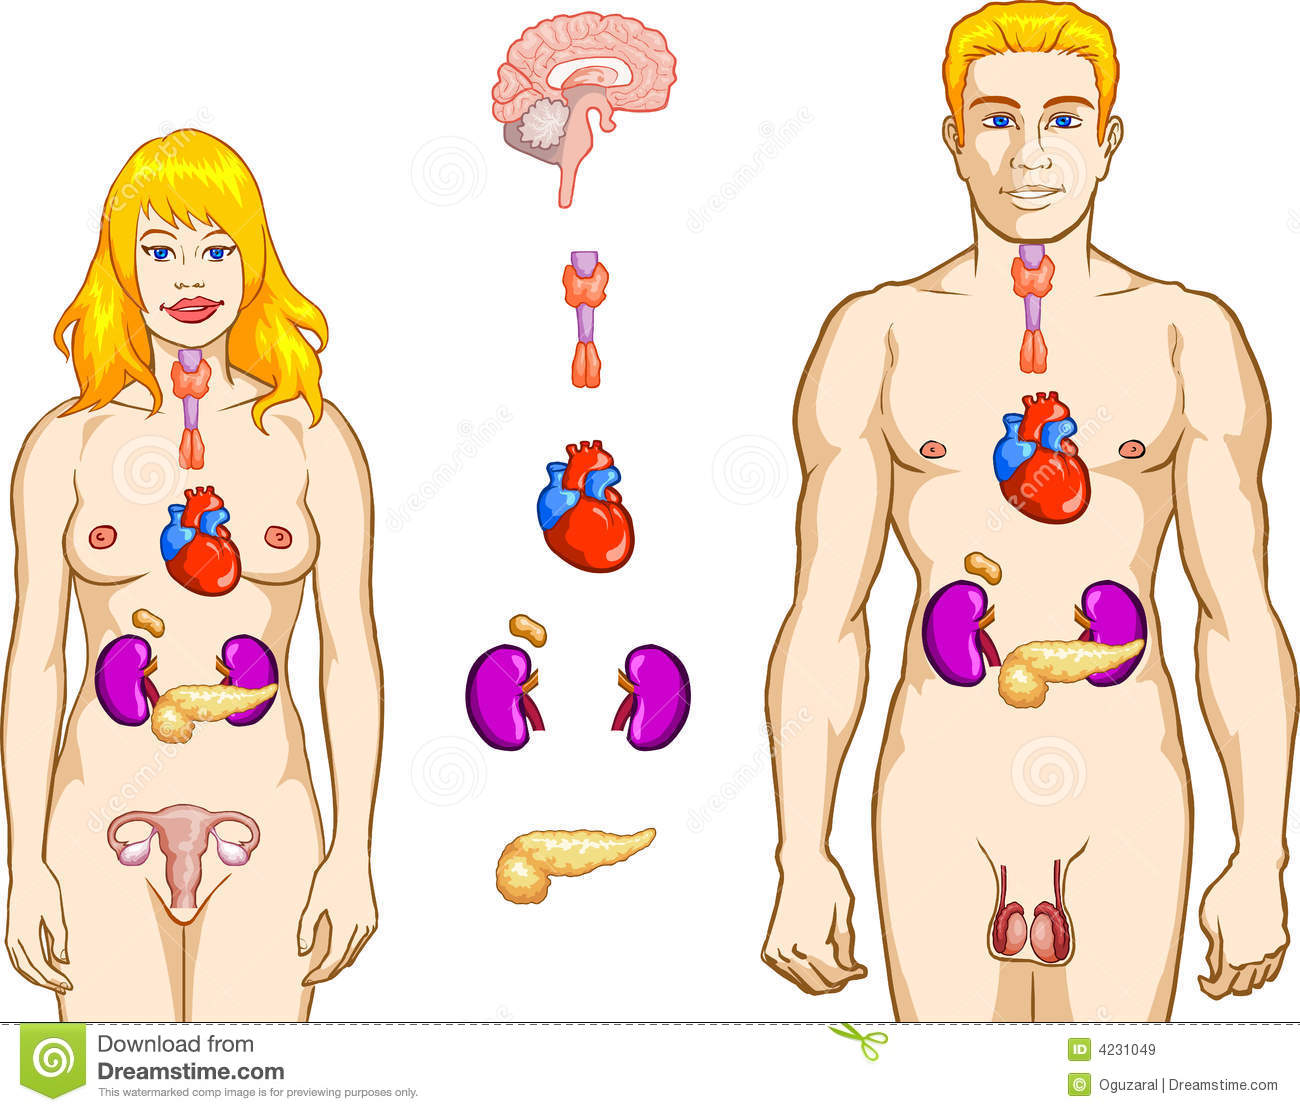 http://www.dreamstime.com/royalty-free-stock-images-endocrine-system